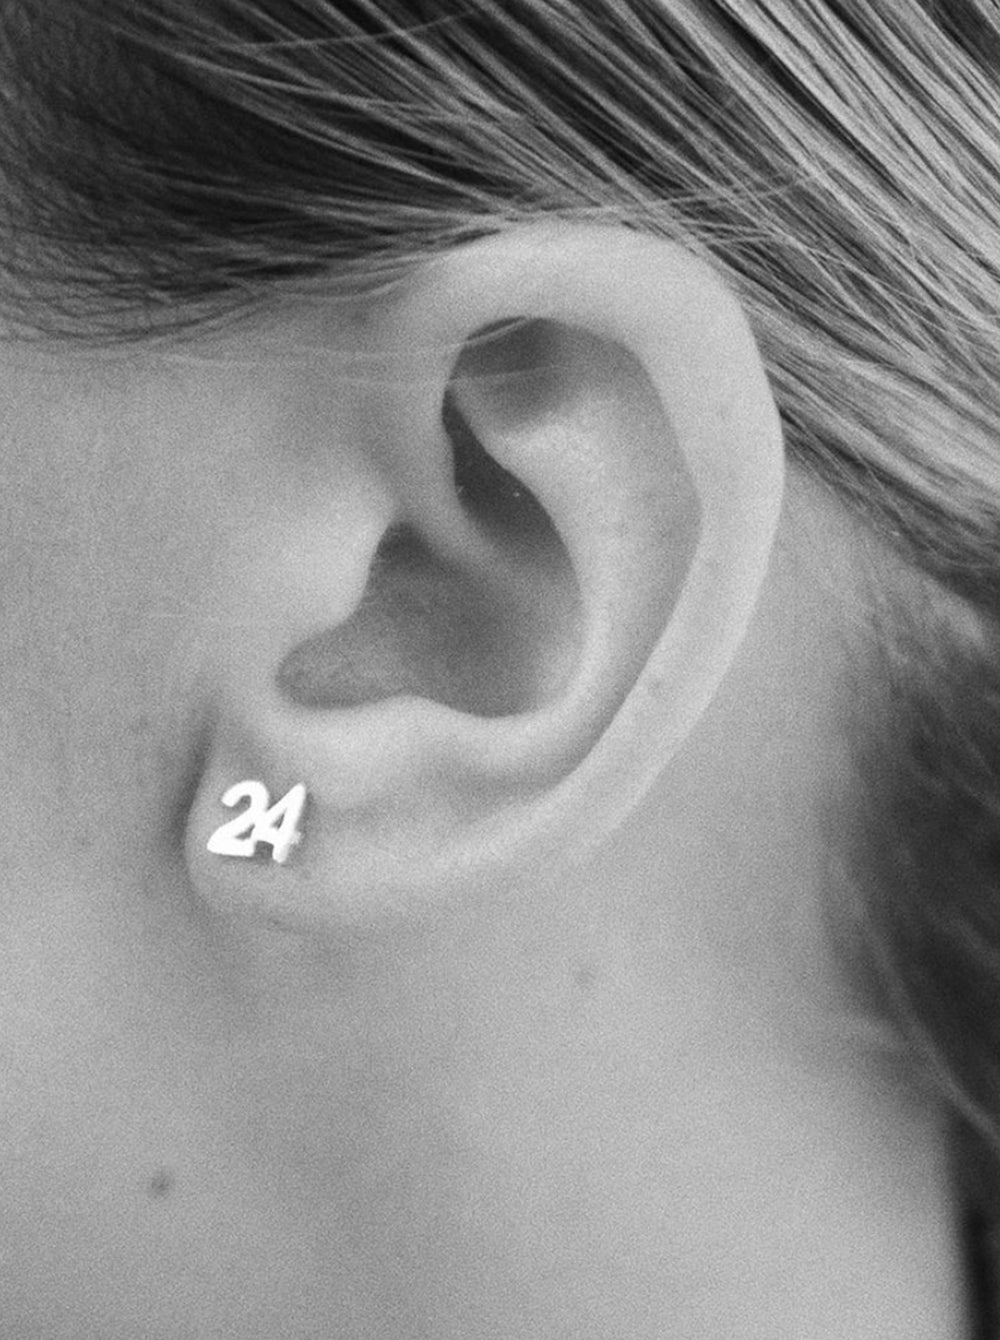 THE NUMBER STUD EARRING